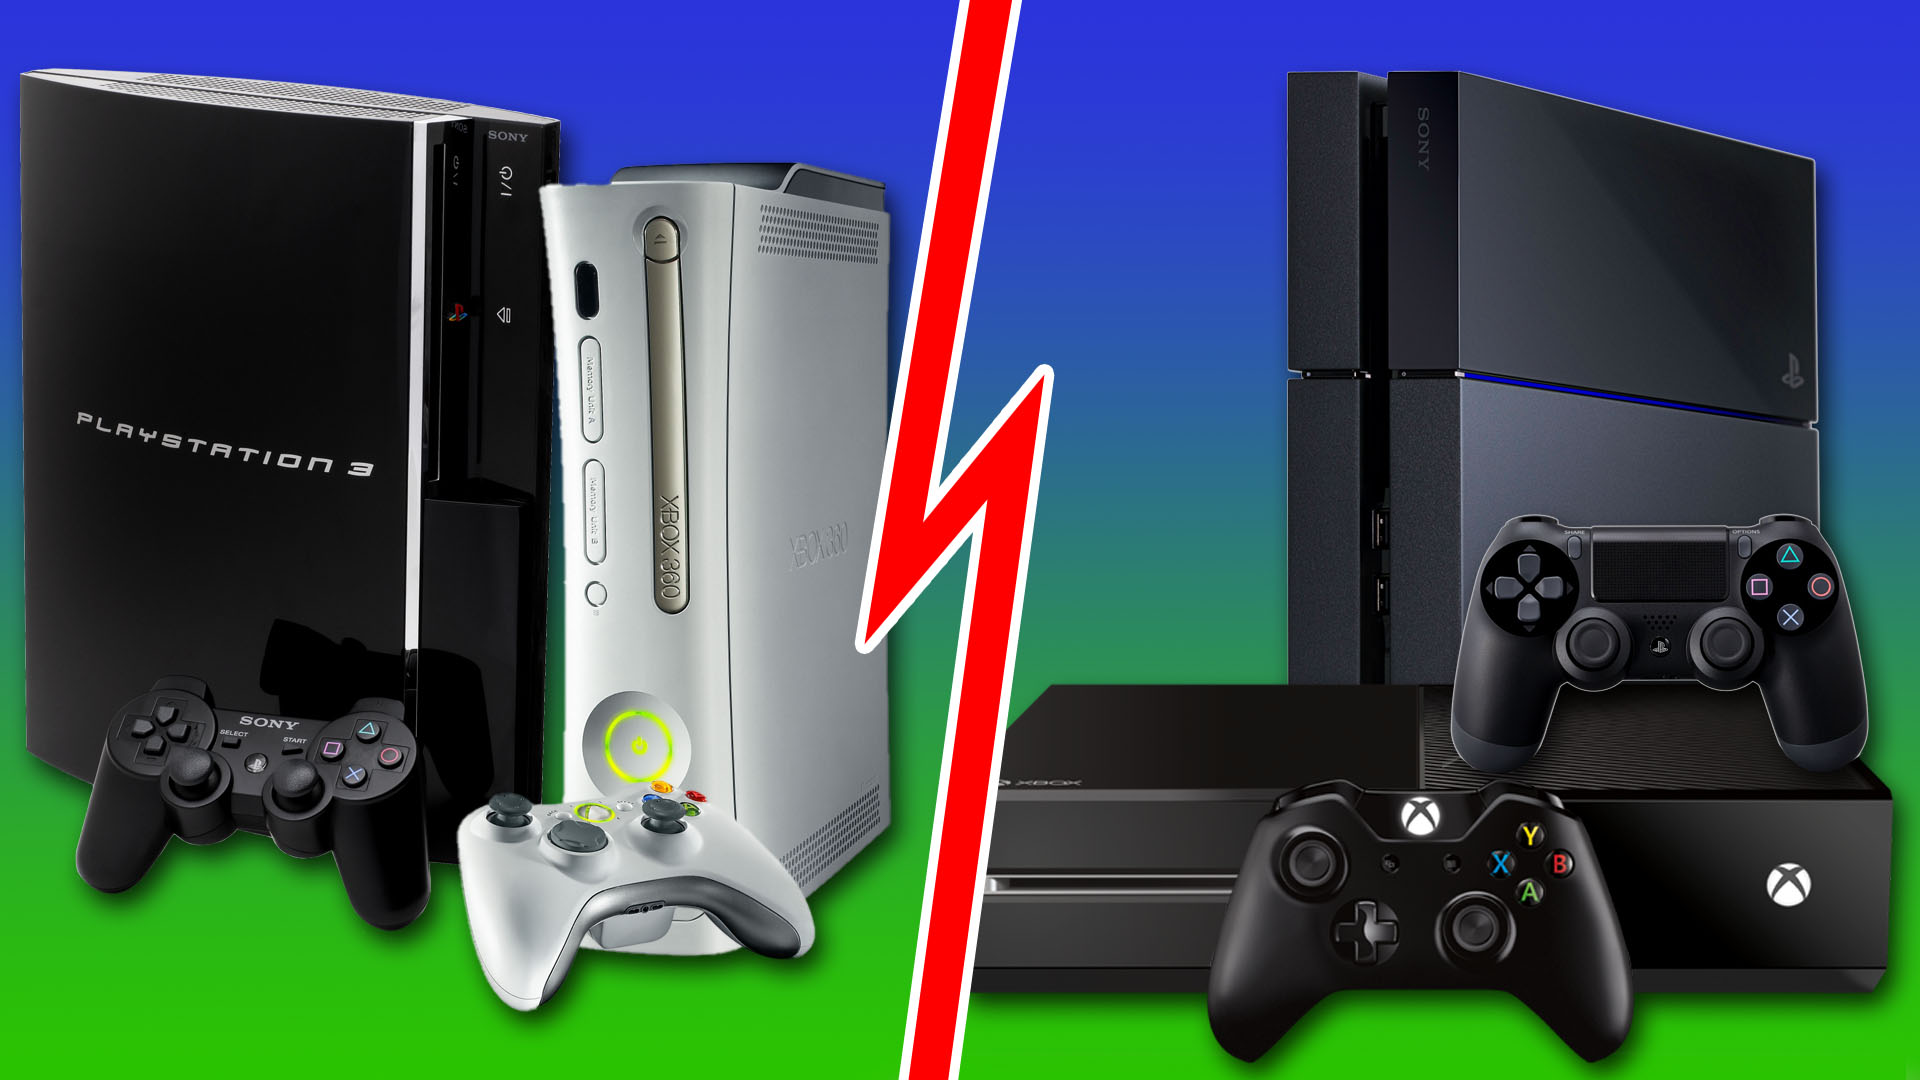 XBOX 360 or PS3: Which One is the Best for Me?